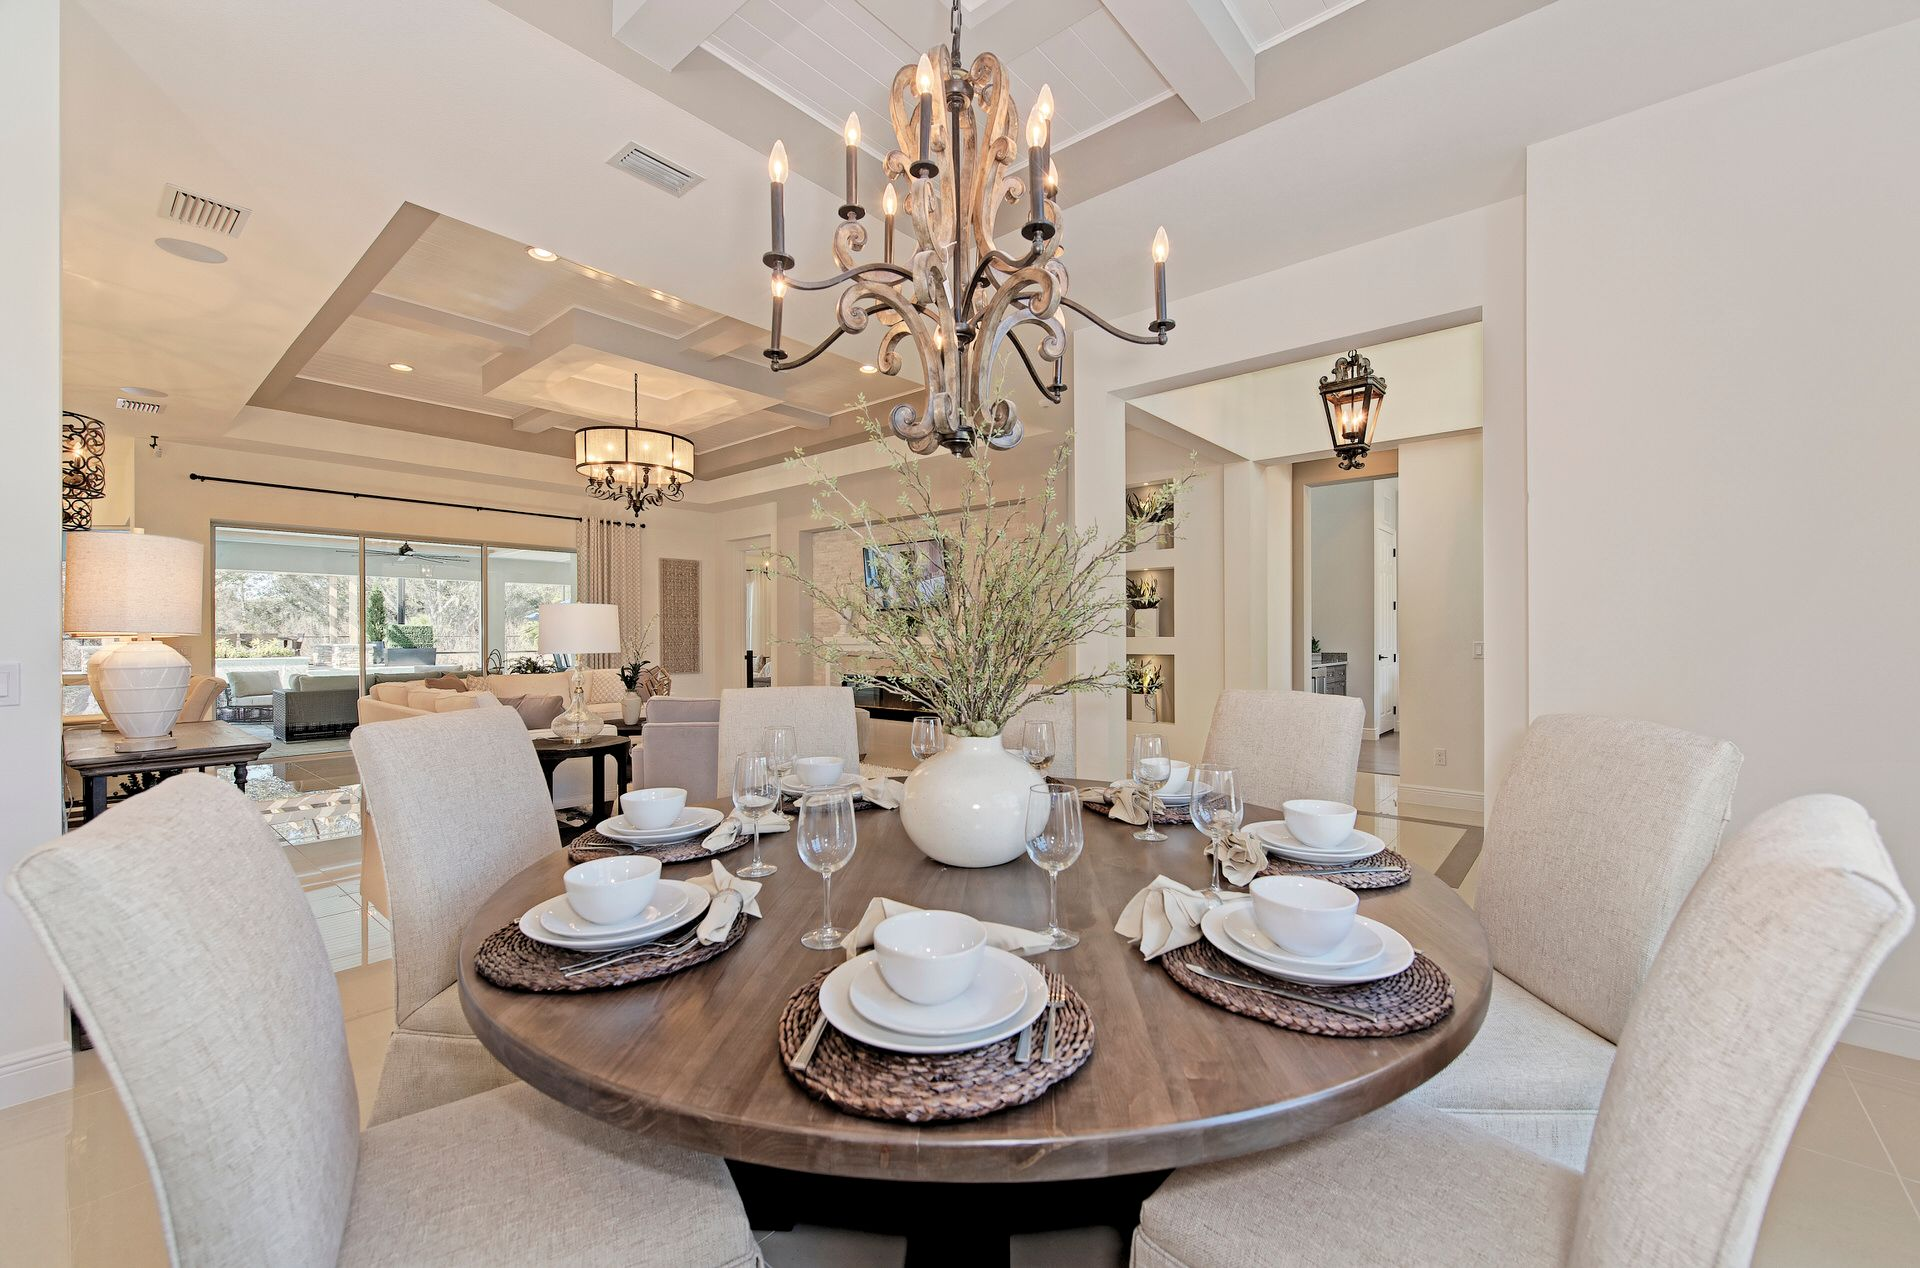 Living Area featured in the Grand Santa Maria-The Reserve By Medallion Home